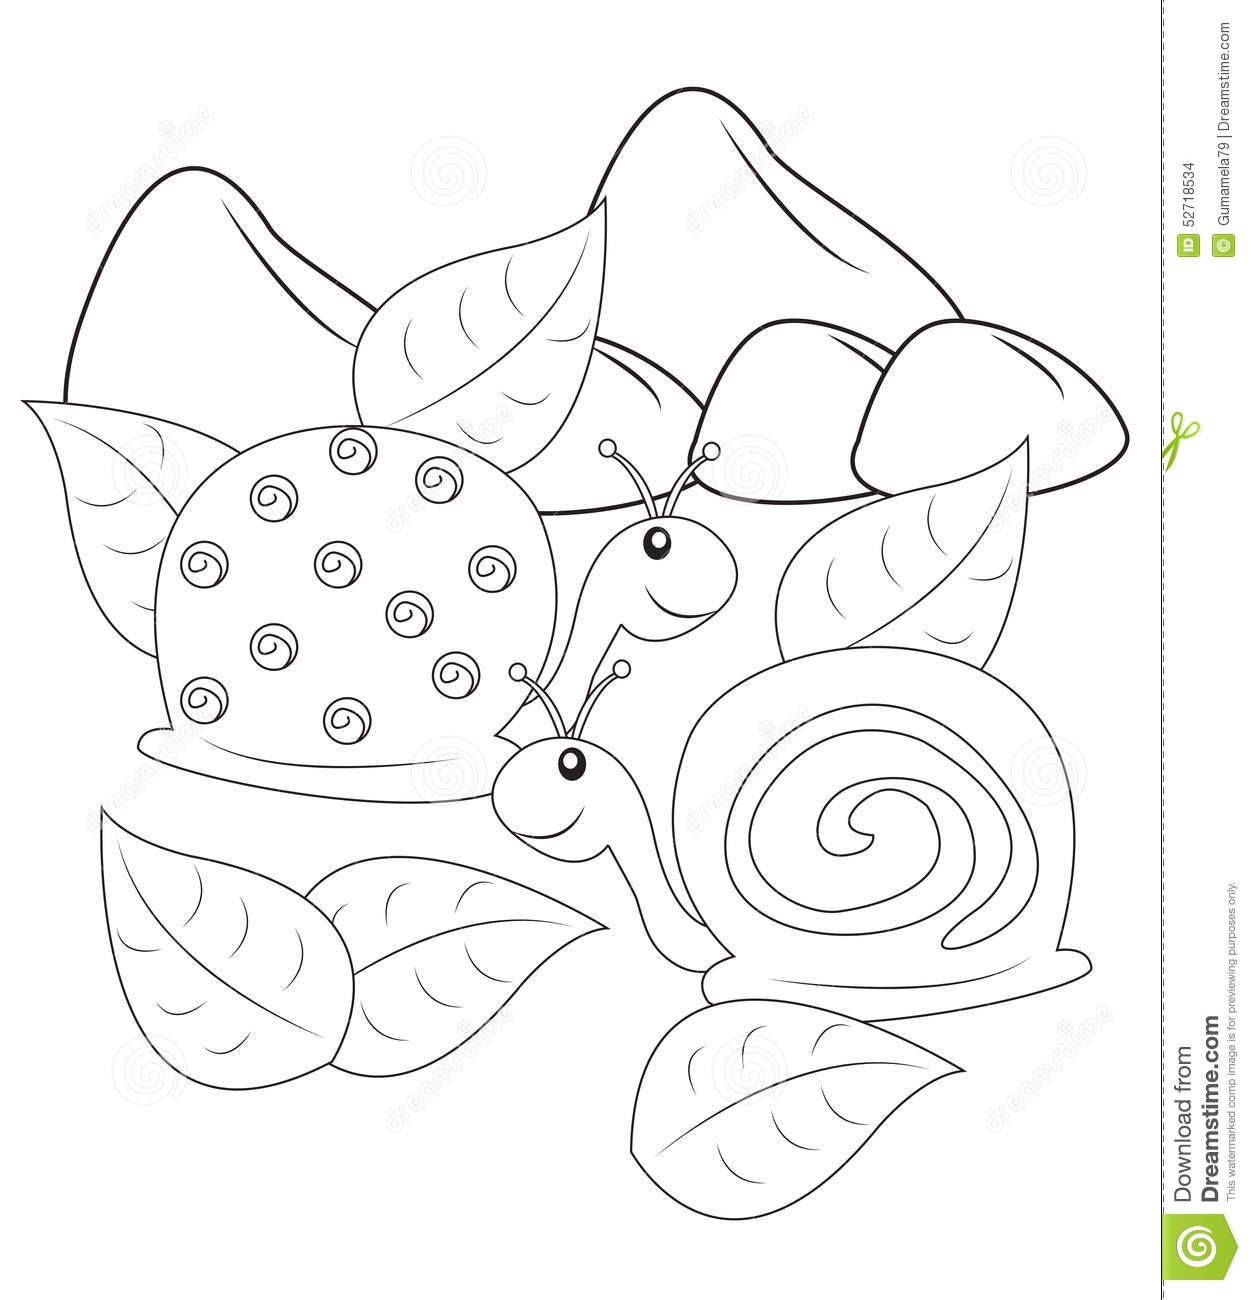 Cartoon funny snail coloring book stock vector 232624141 - Stock Illustration Snails Coloring Page Useful As Book Kids Wallpaper Gallery Pics Photos Coloring Book